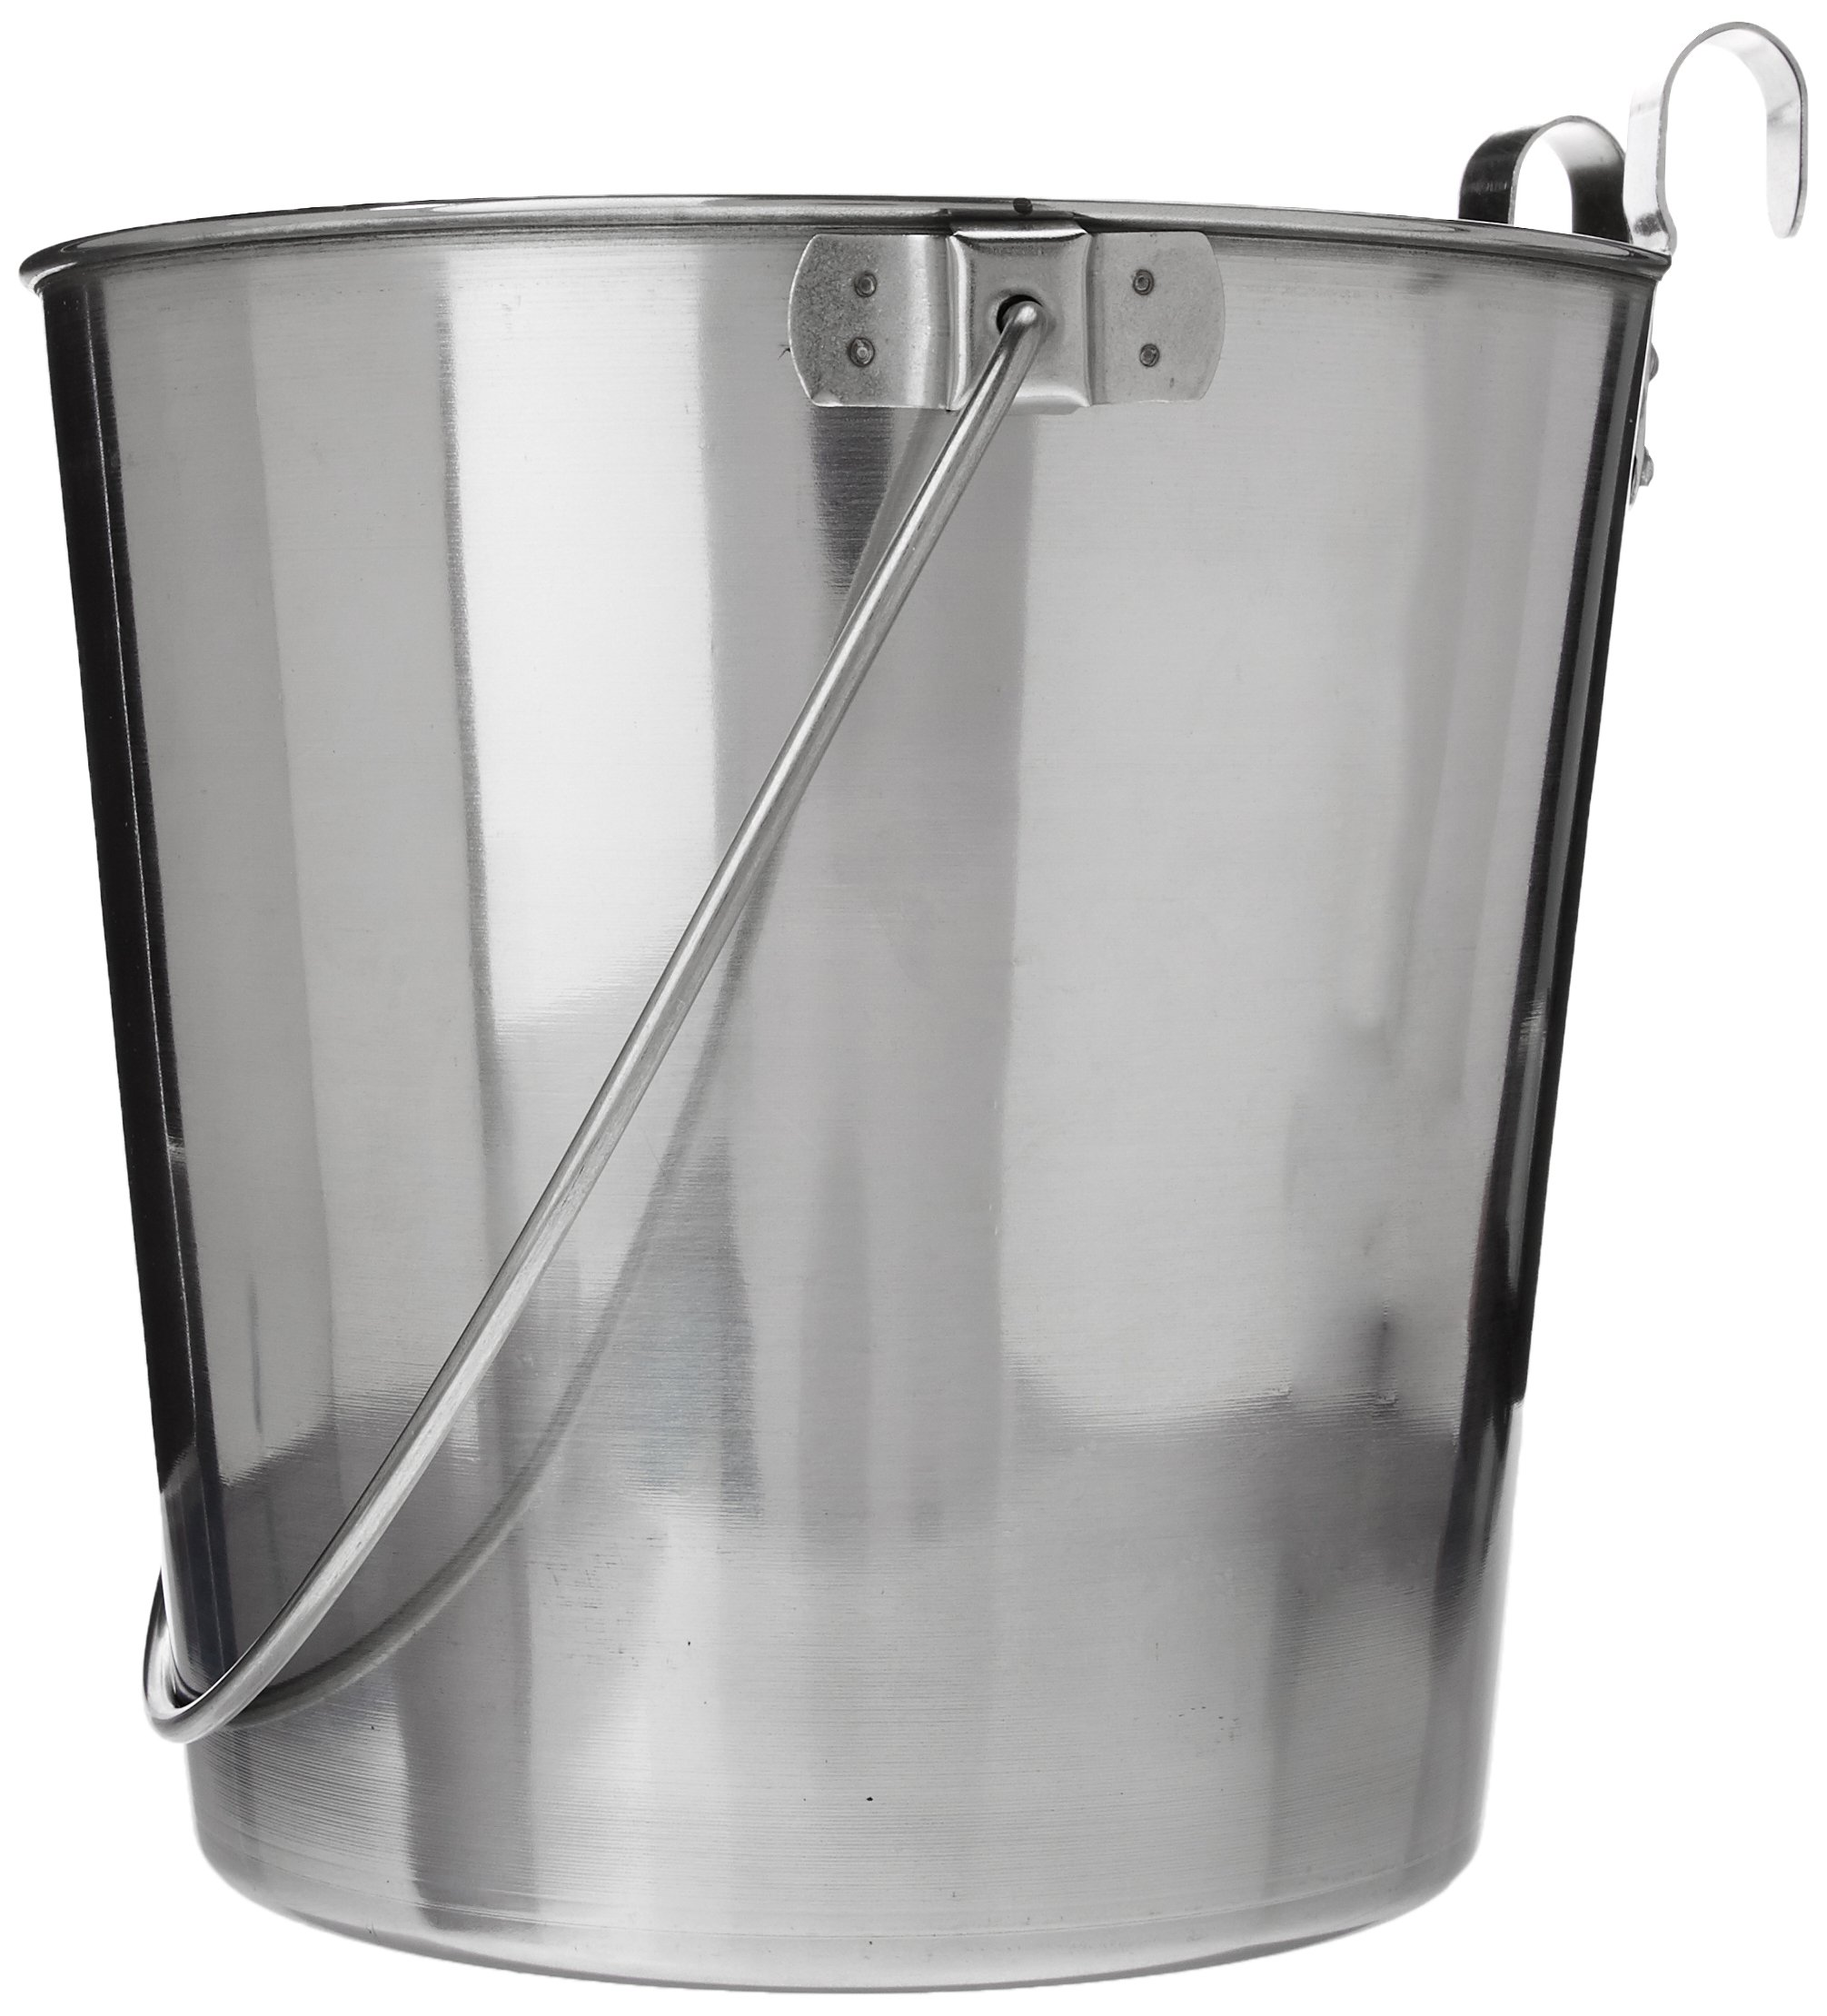 QT Dog Flat Sided Stainless Steel Bucket with Hooks, 6 Quart by QT Dog (Image #1)